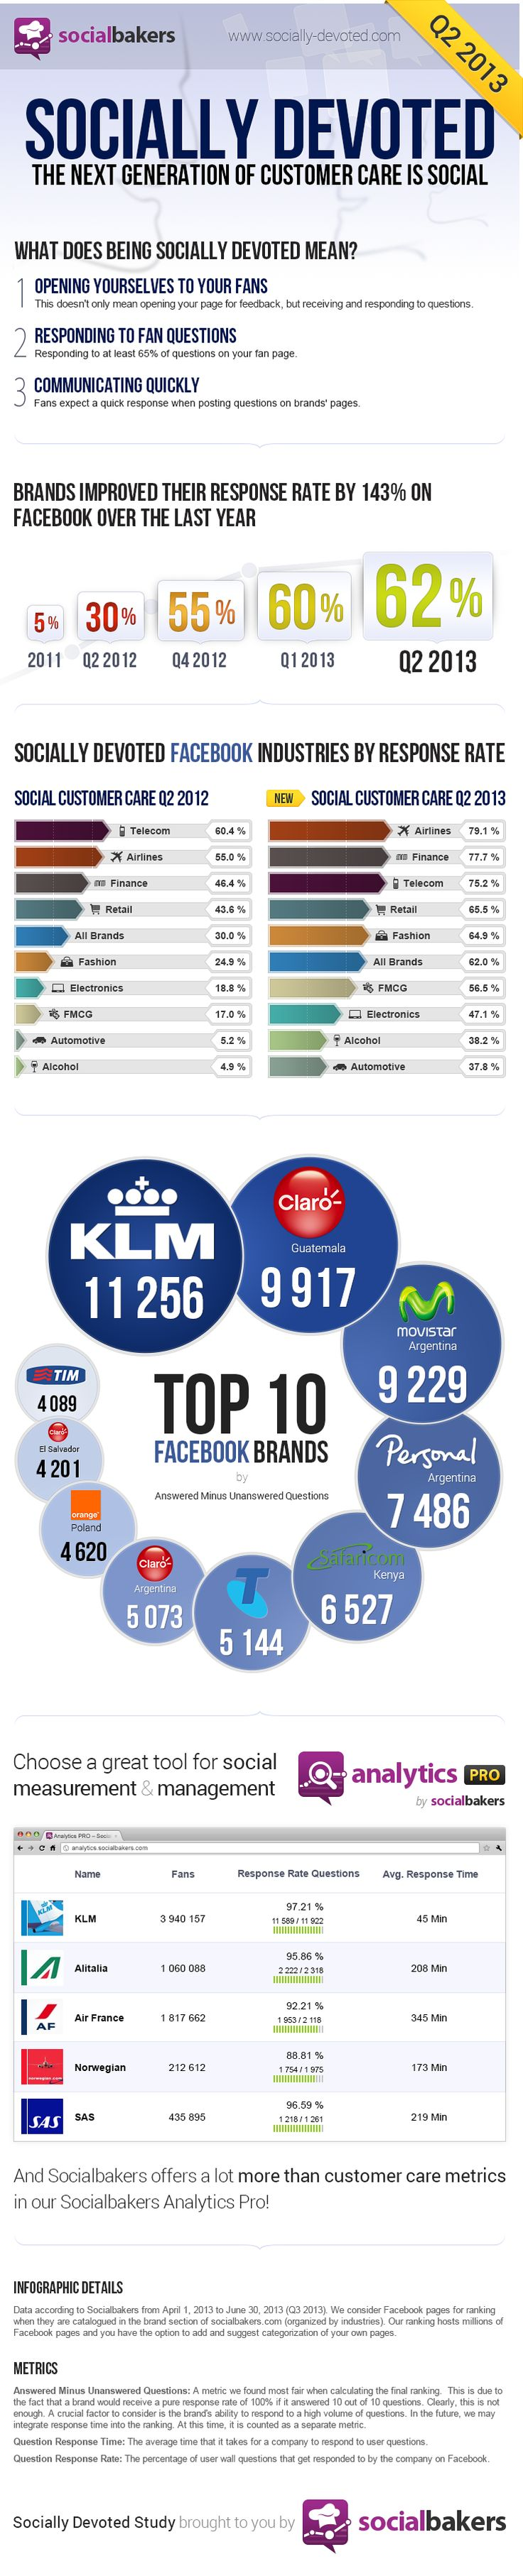 Socially Devoted Q2 2013 Infographics -- awesome data! Brands are getting better at responding faster on social sites.